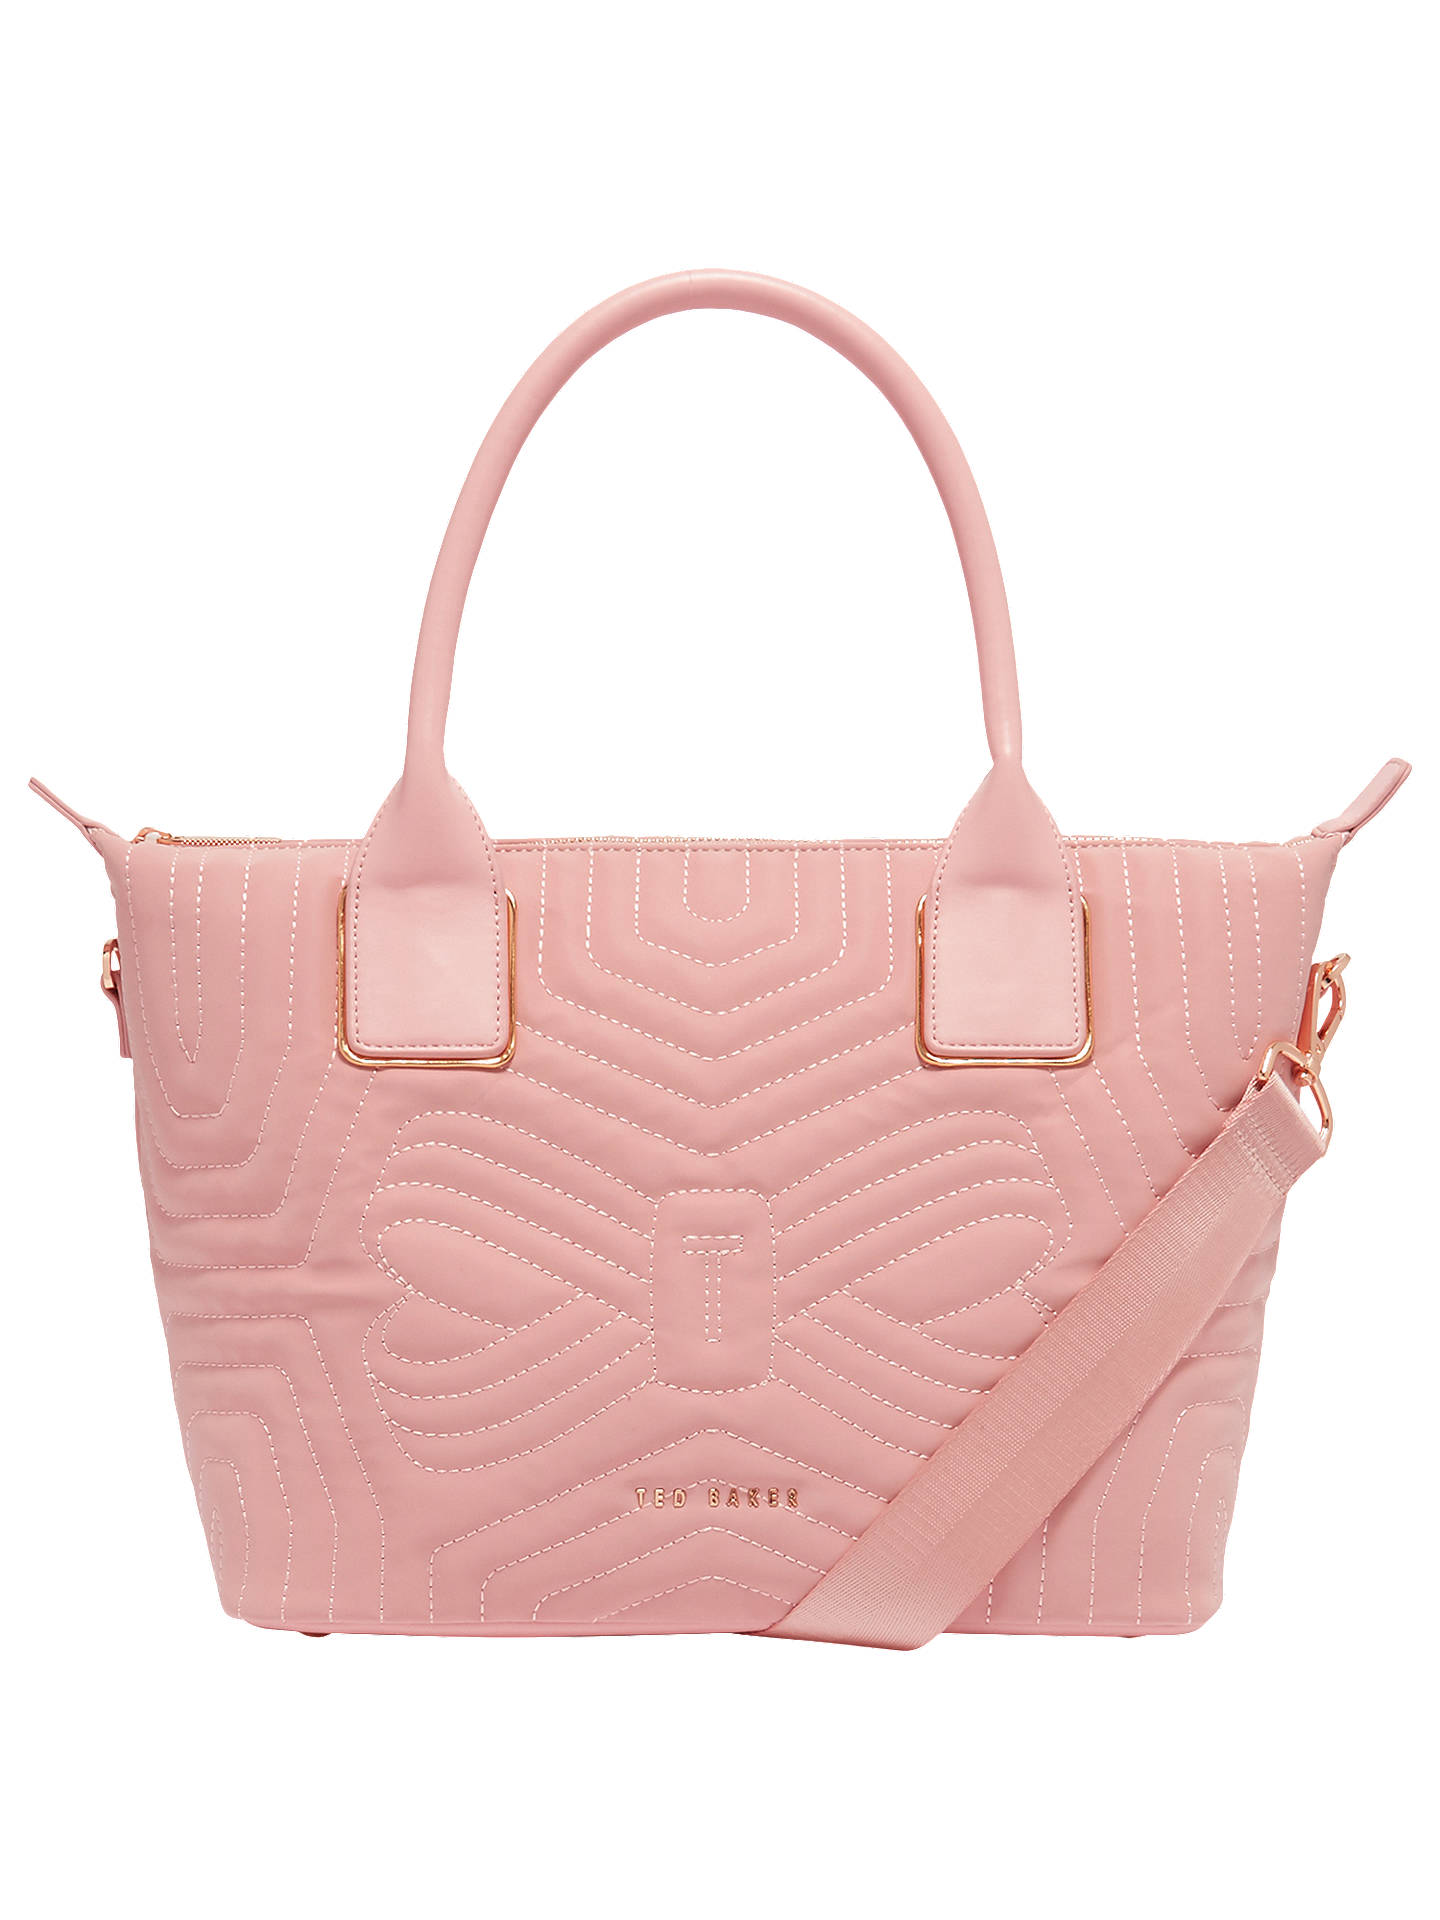 Ted Baker Carisee Quilted Tote Bag Dusky Pink Online At Johnlewis